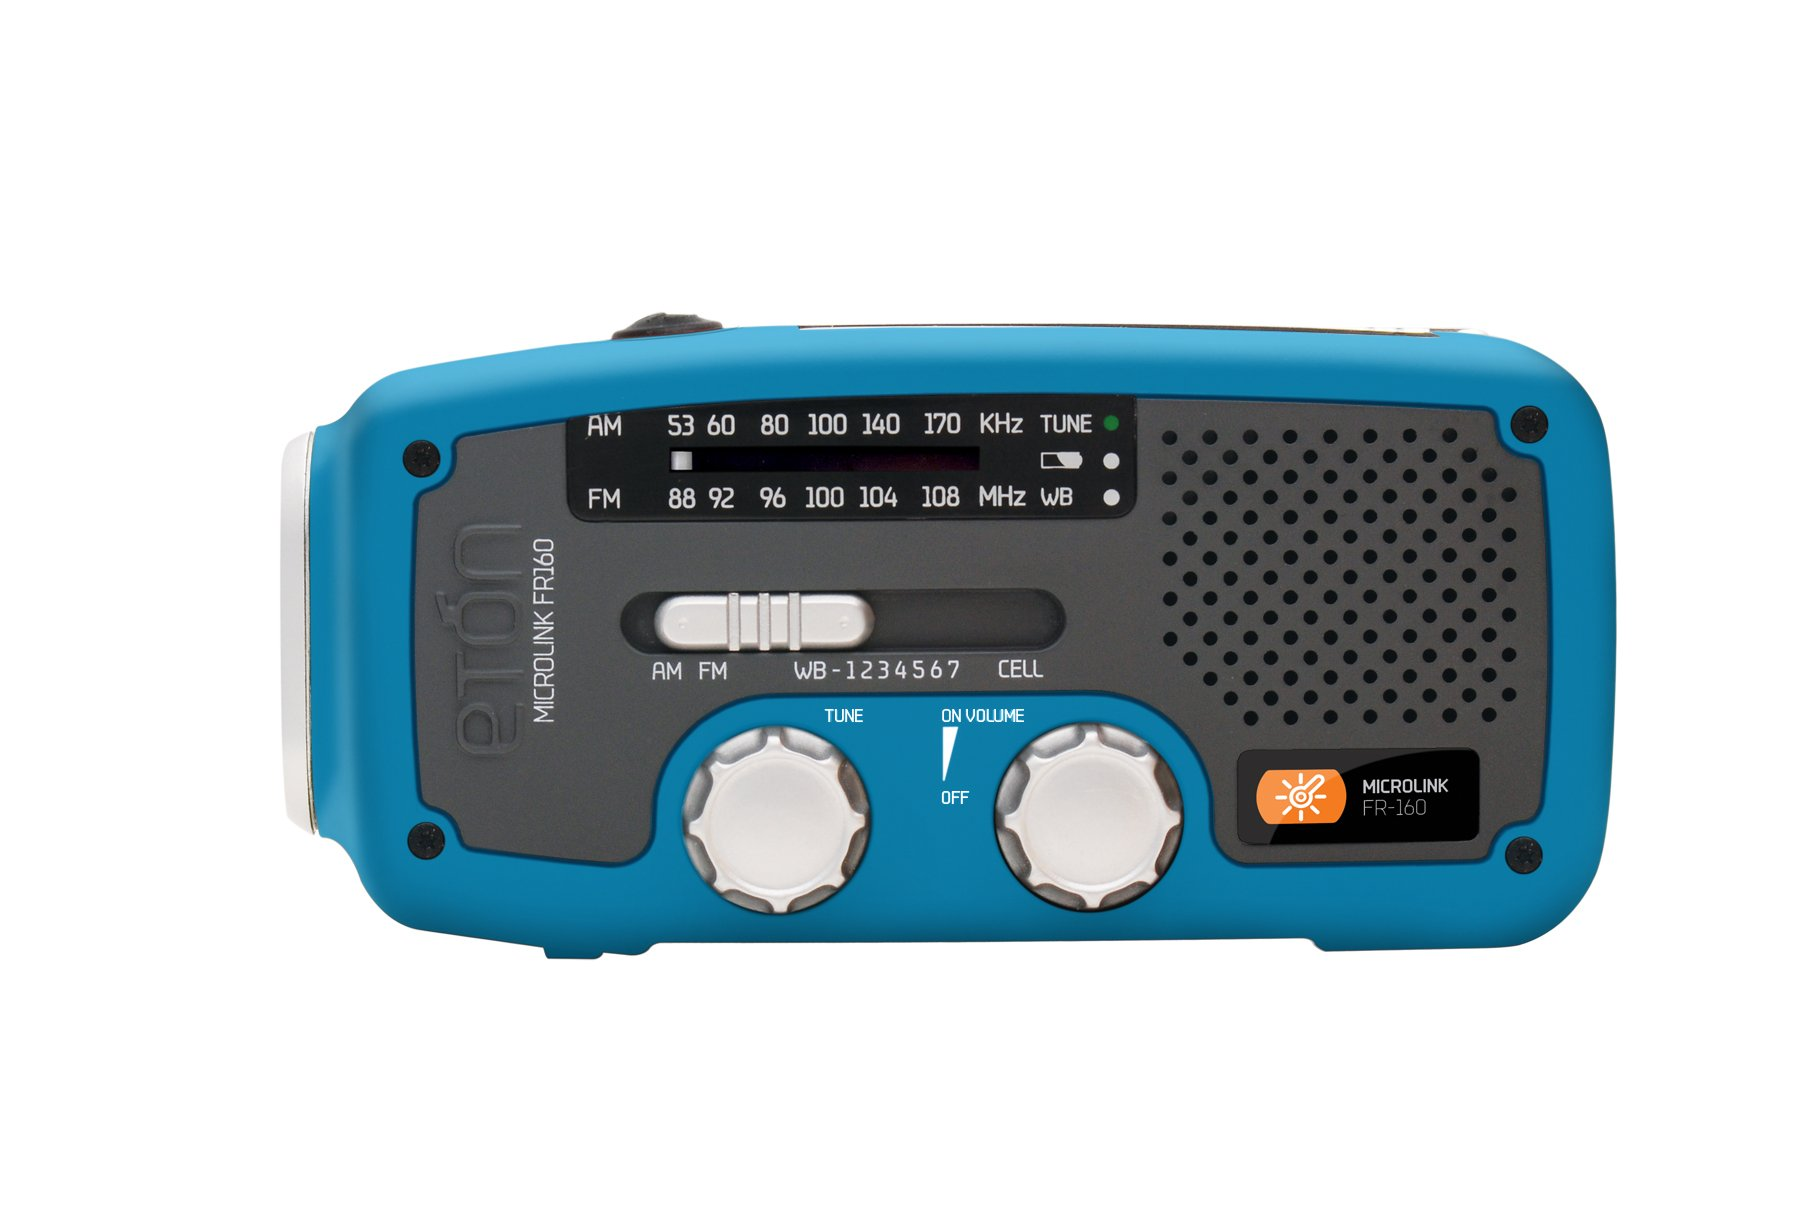 Etón NFR160WXBL Microlink Self-Powered AM/FM/NOAA Weather Radio with Flashlight, Solar Power and Cell Phone Charger (Blue)